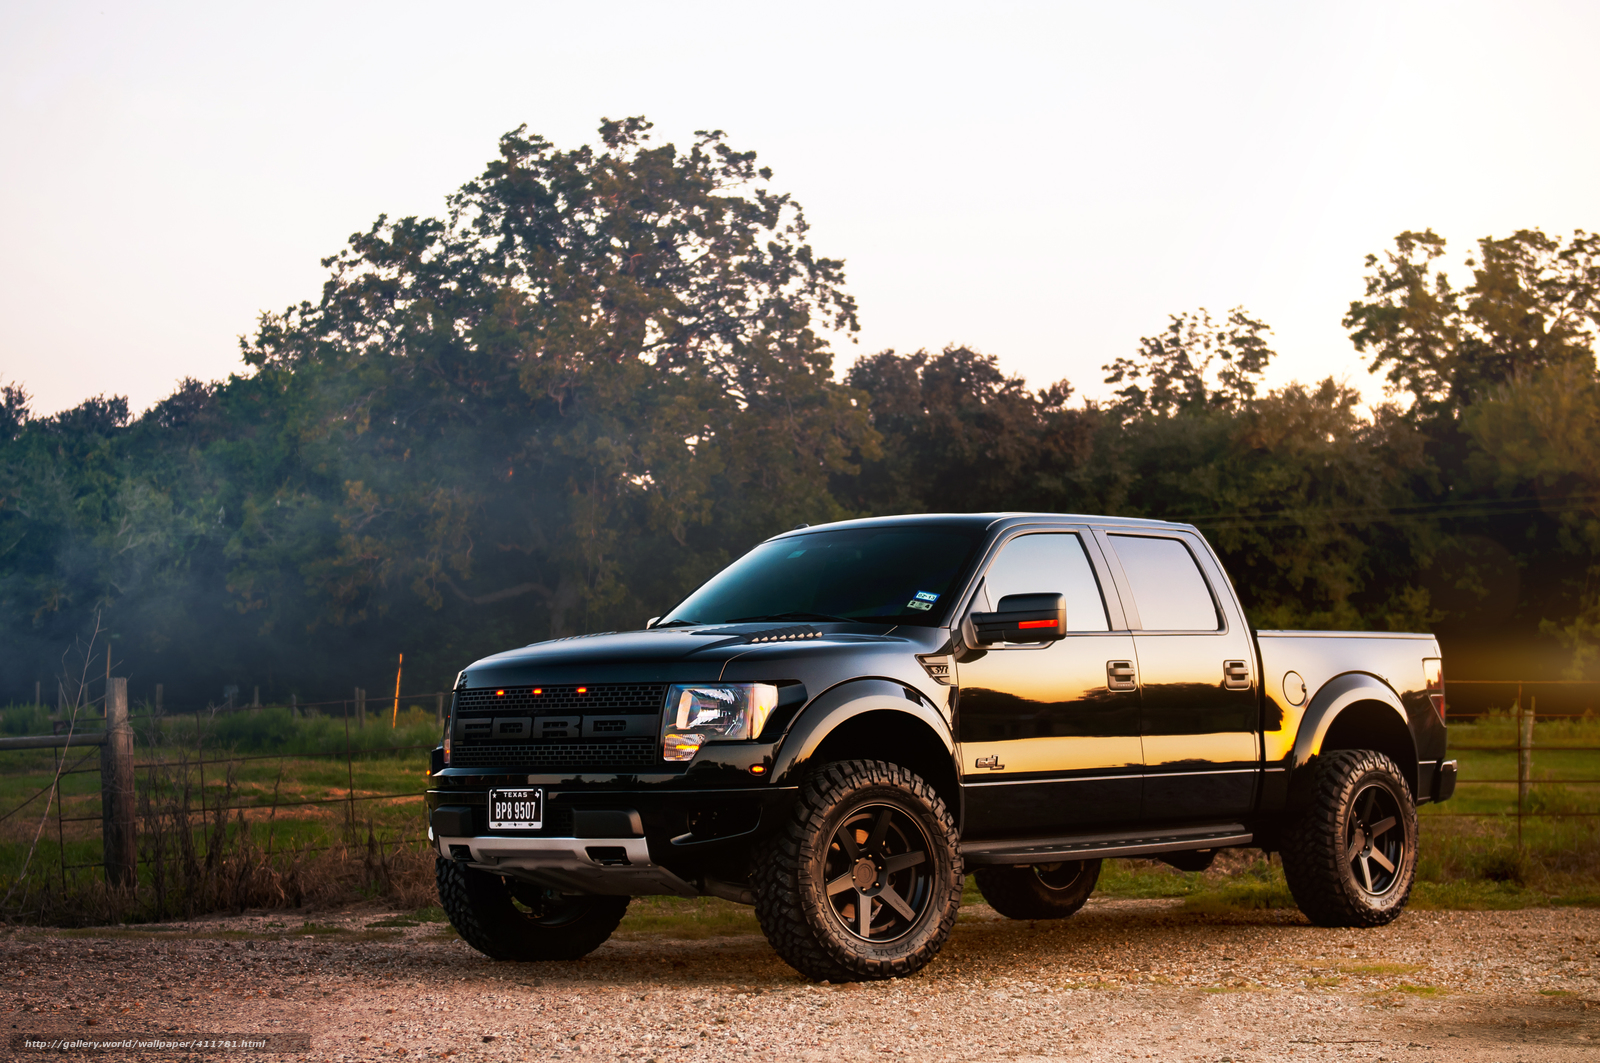 Download wallpaper ford raptor Black pickup desktop wallpaper 1600x1063